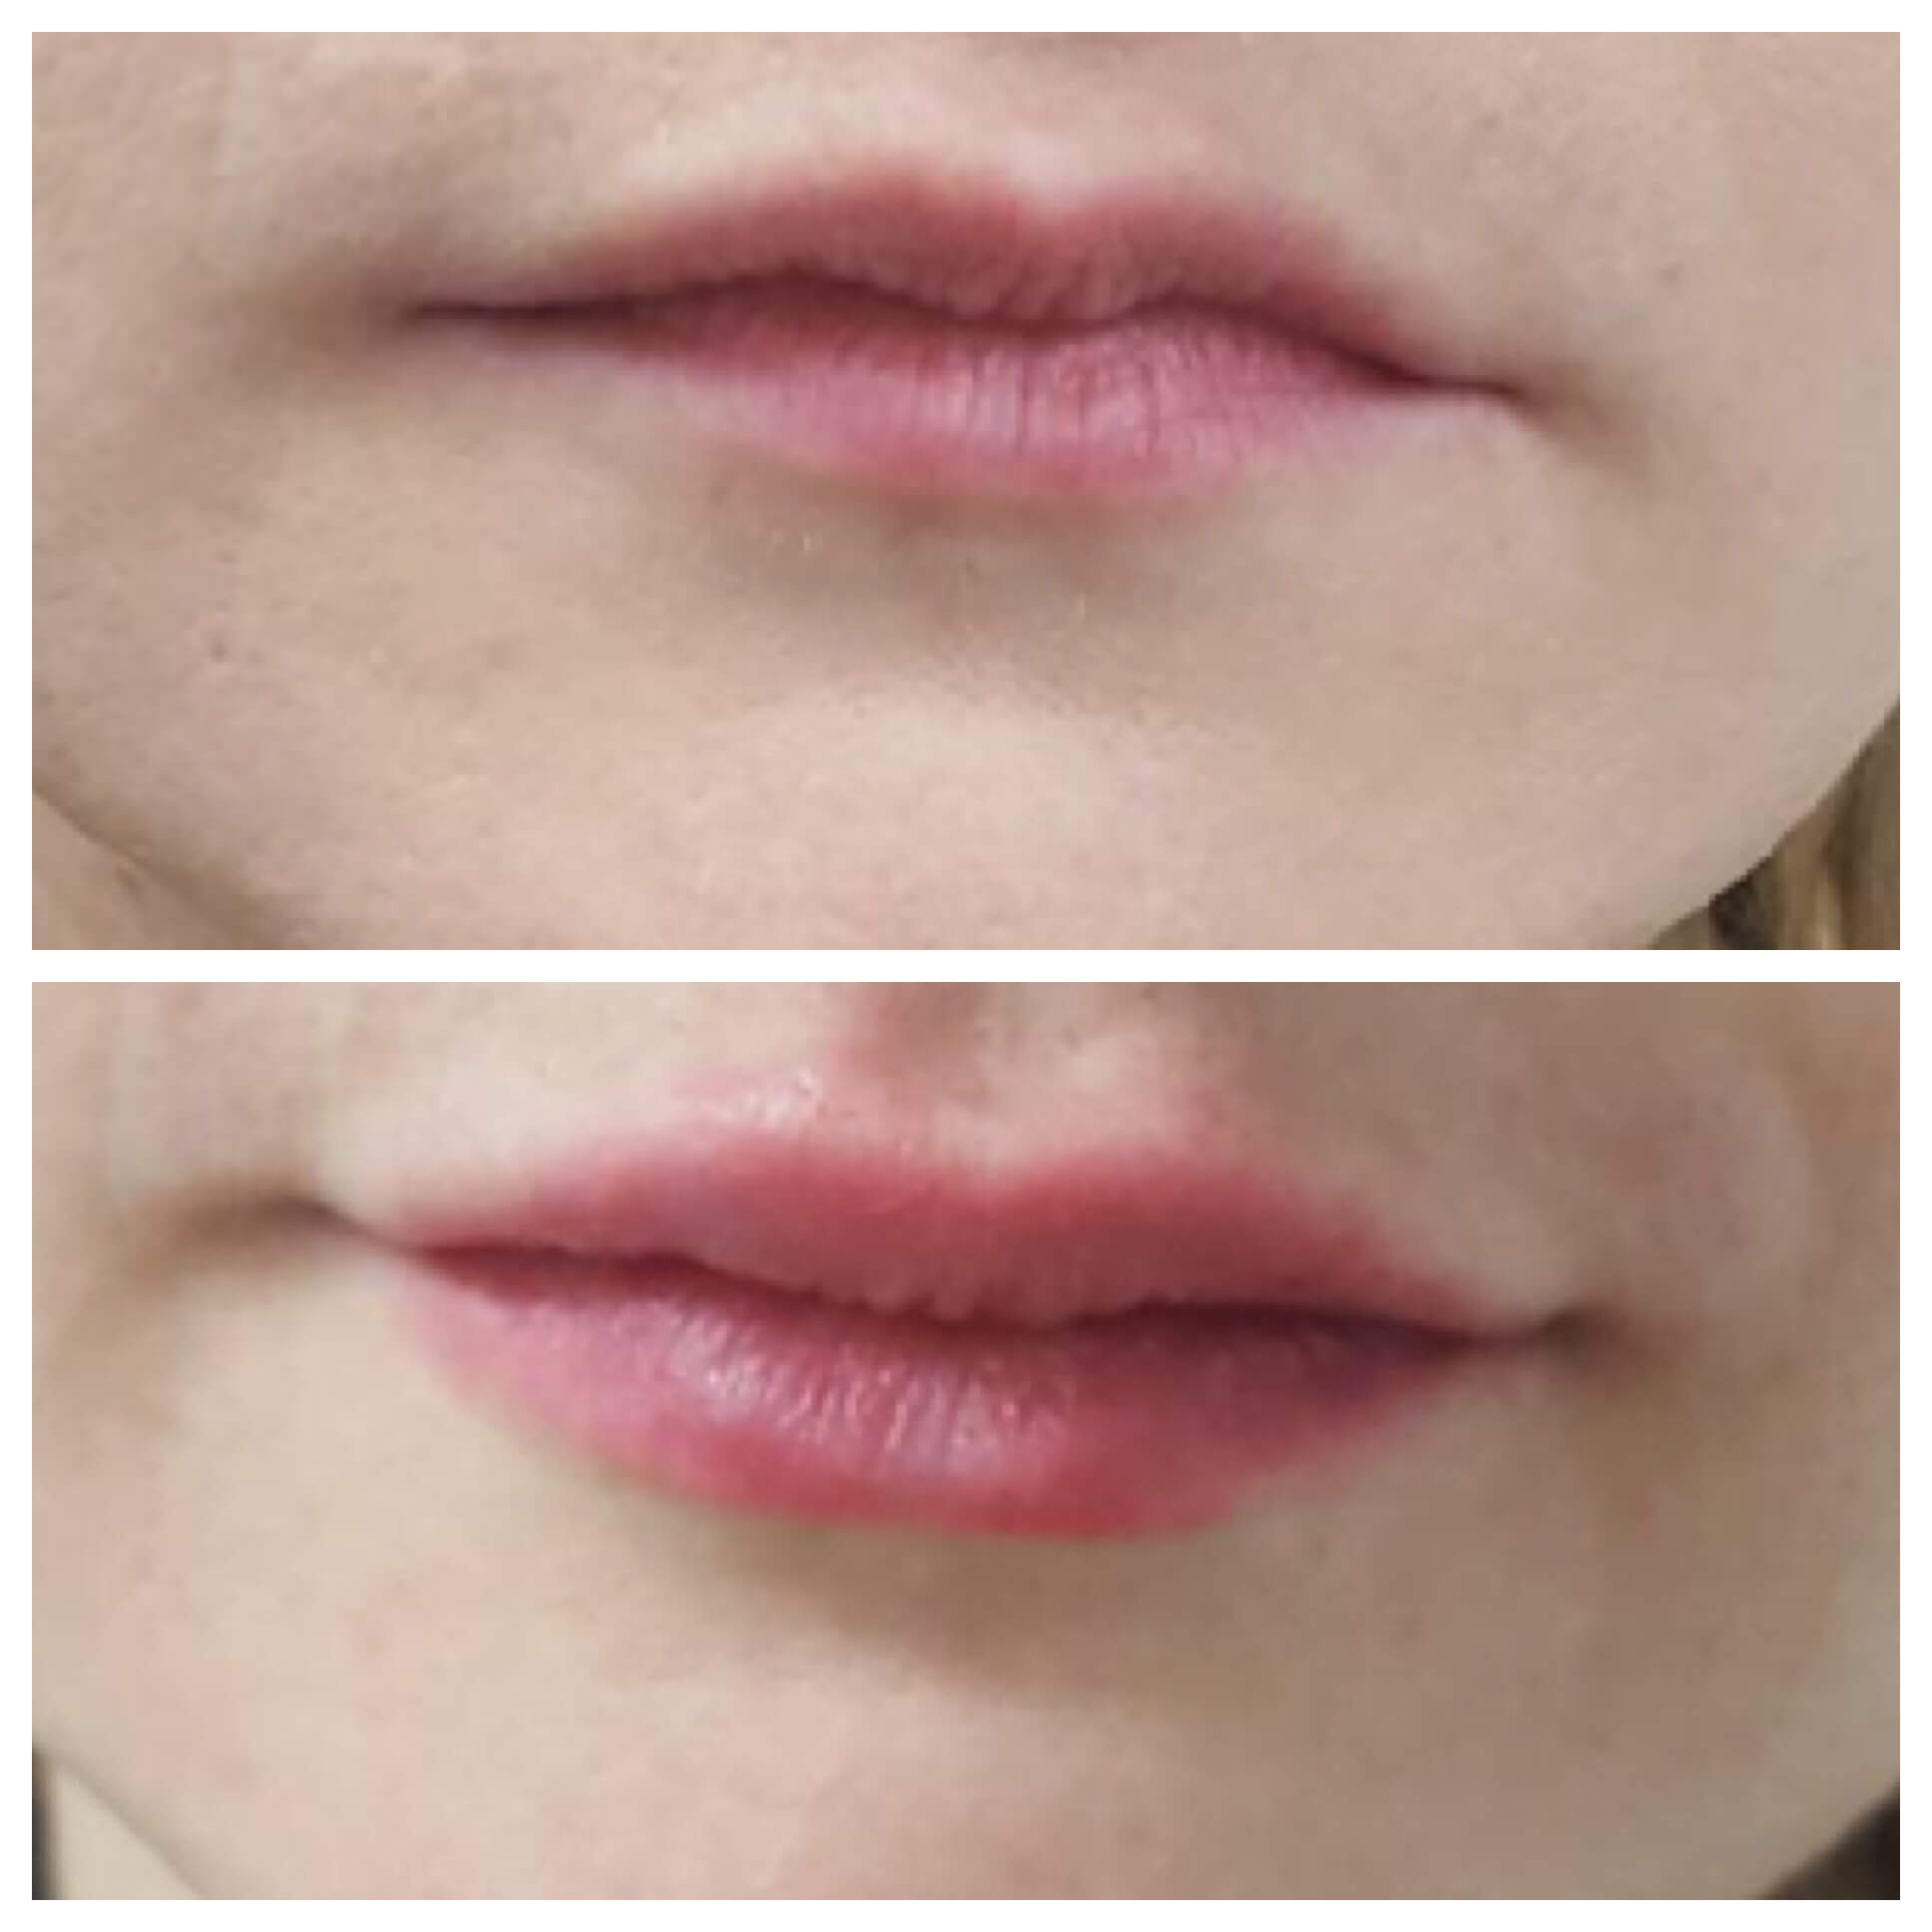 Lip filler - Lip injections